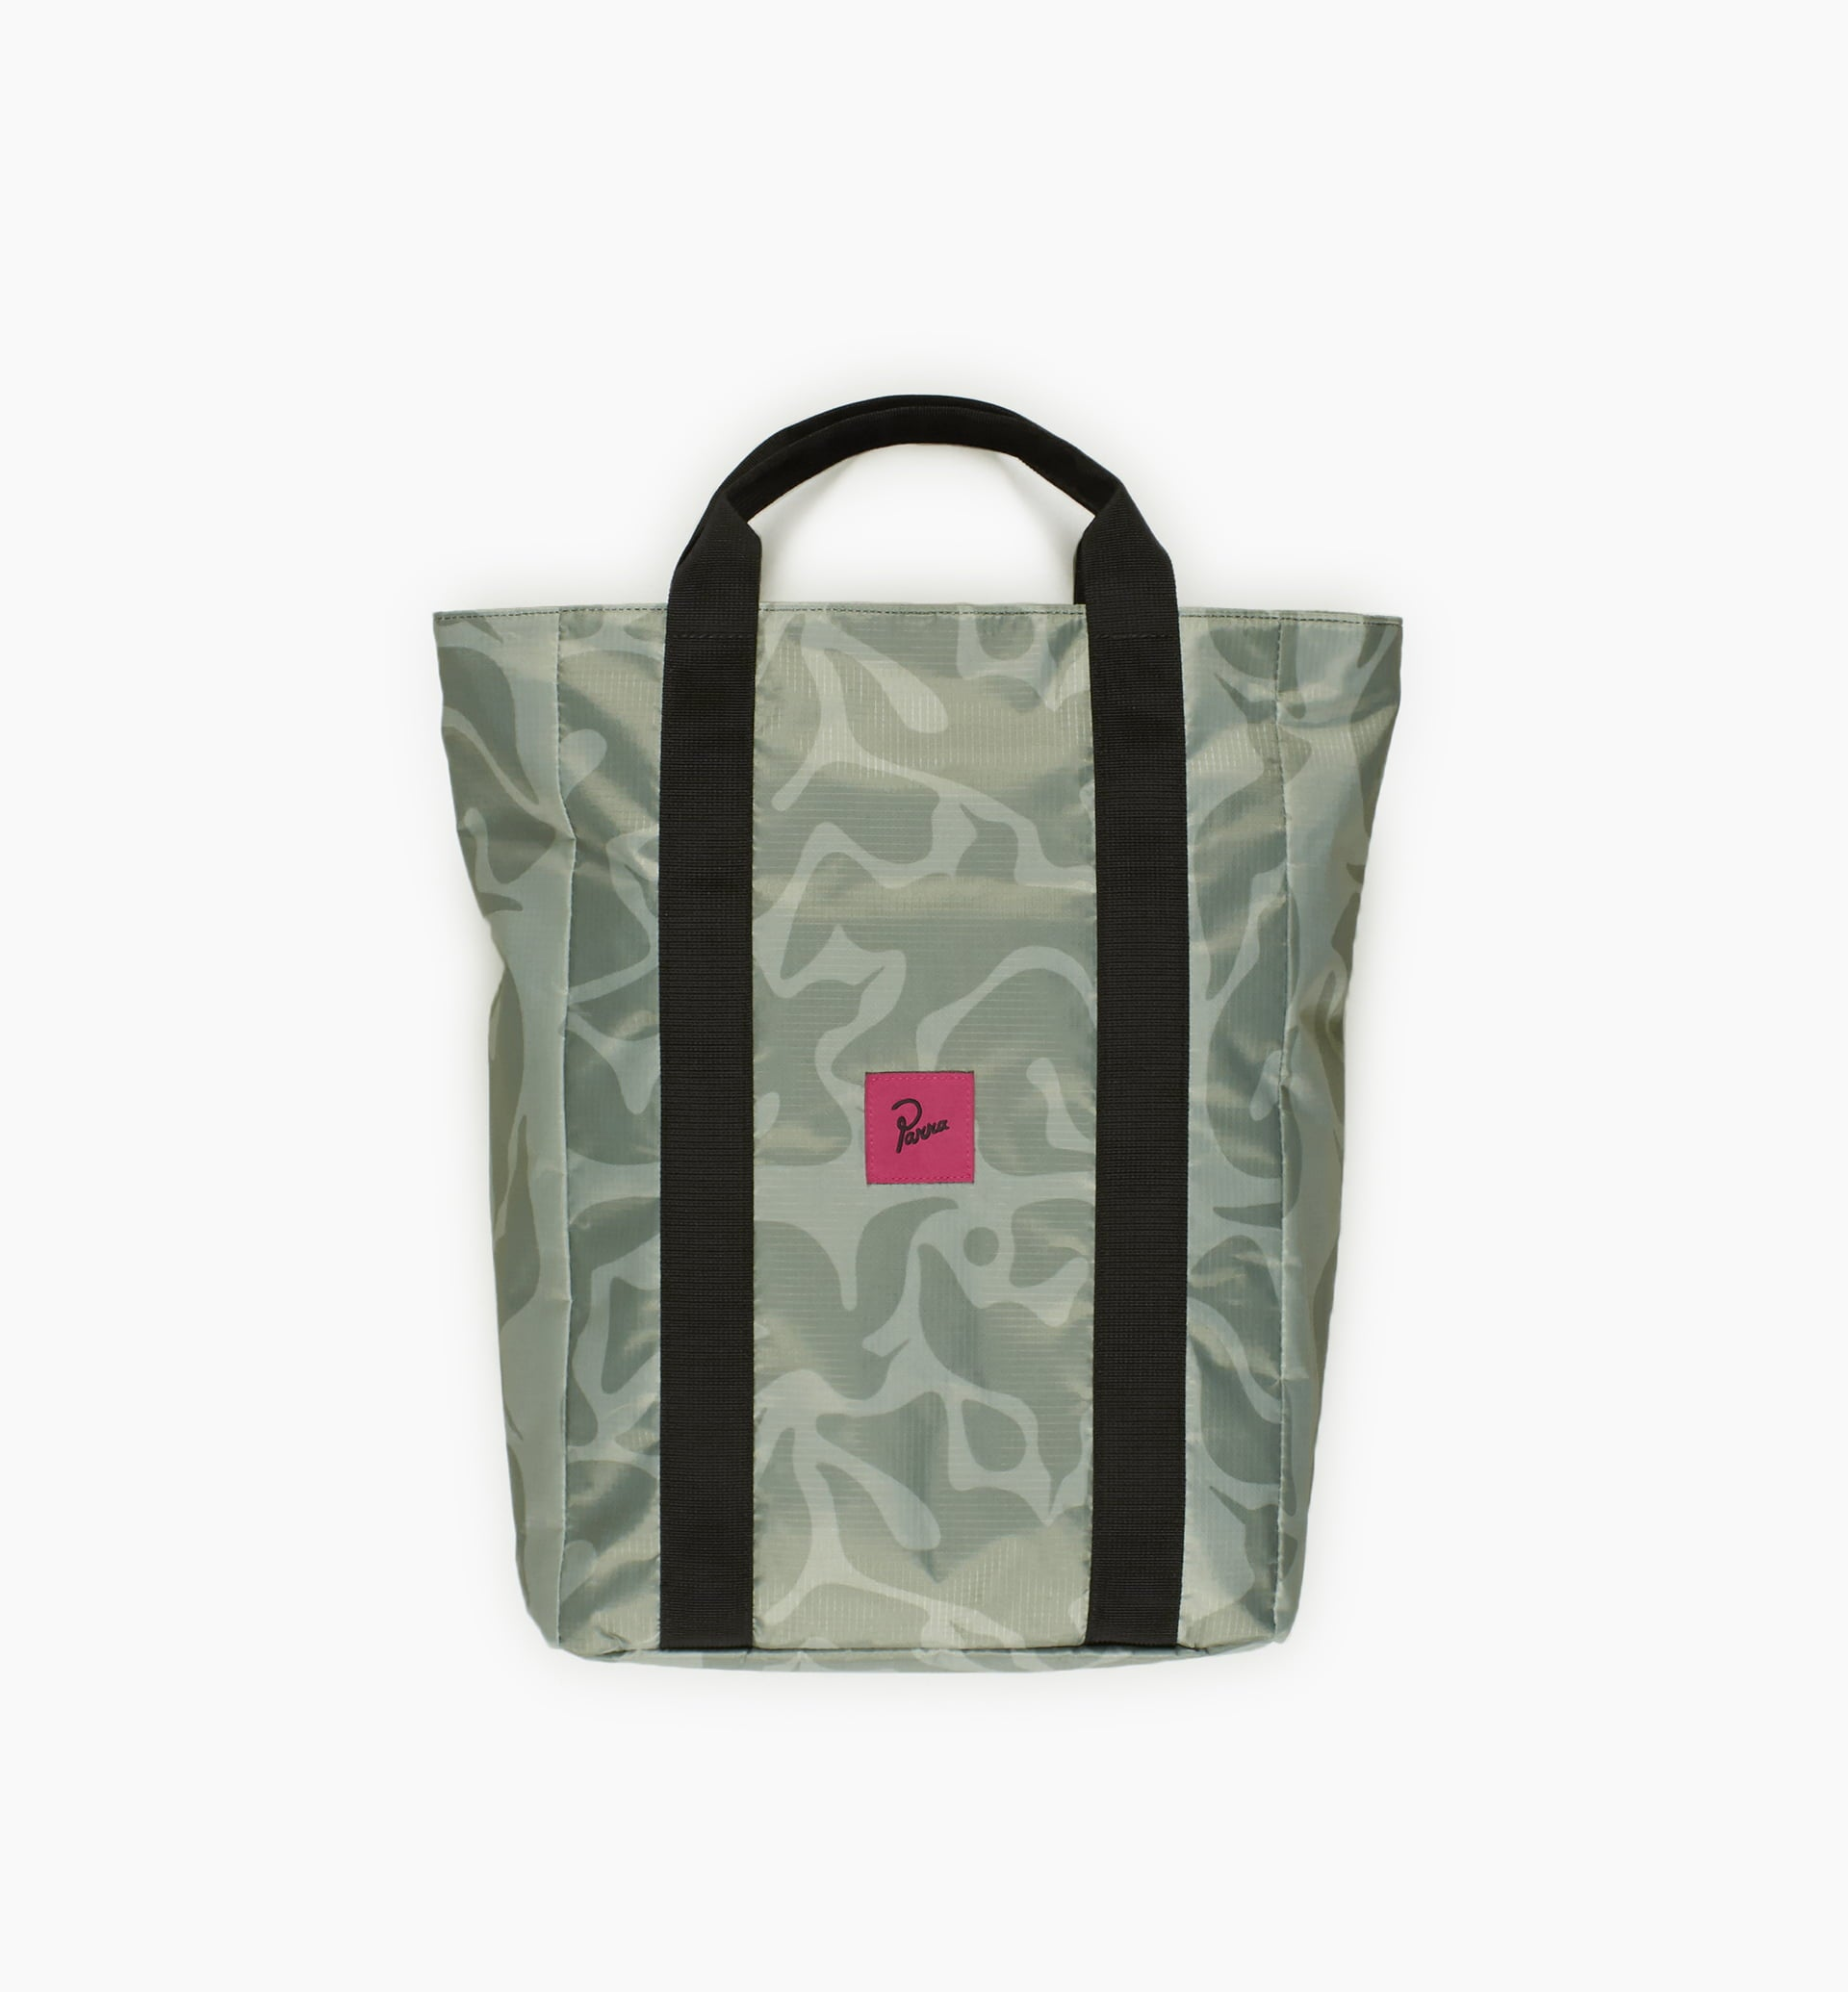 Parra - bird camo tote bag